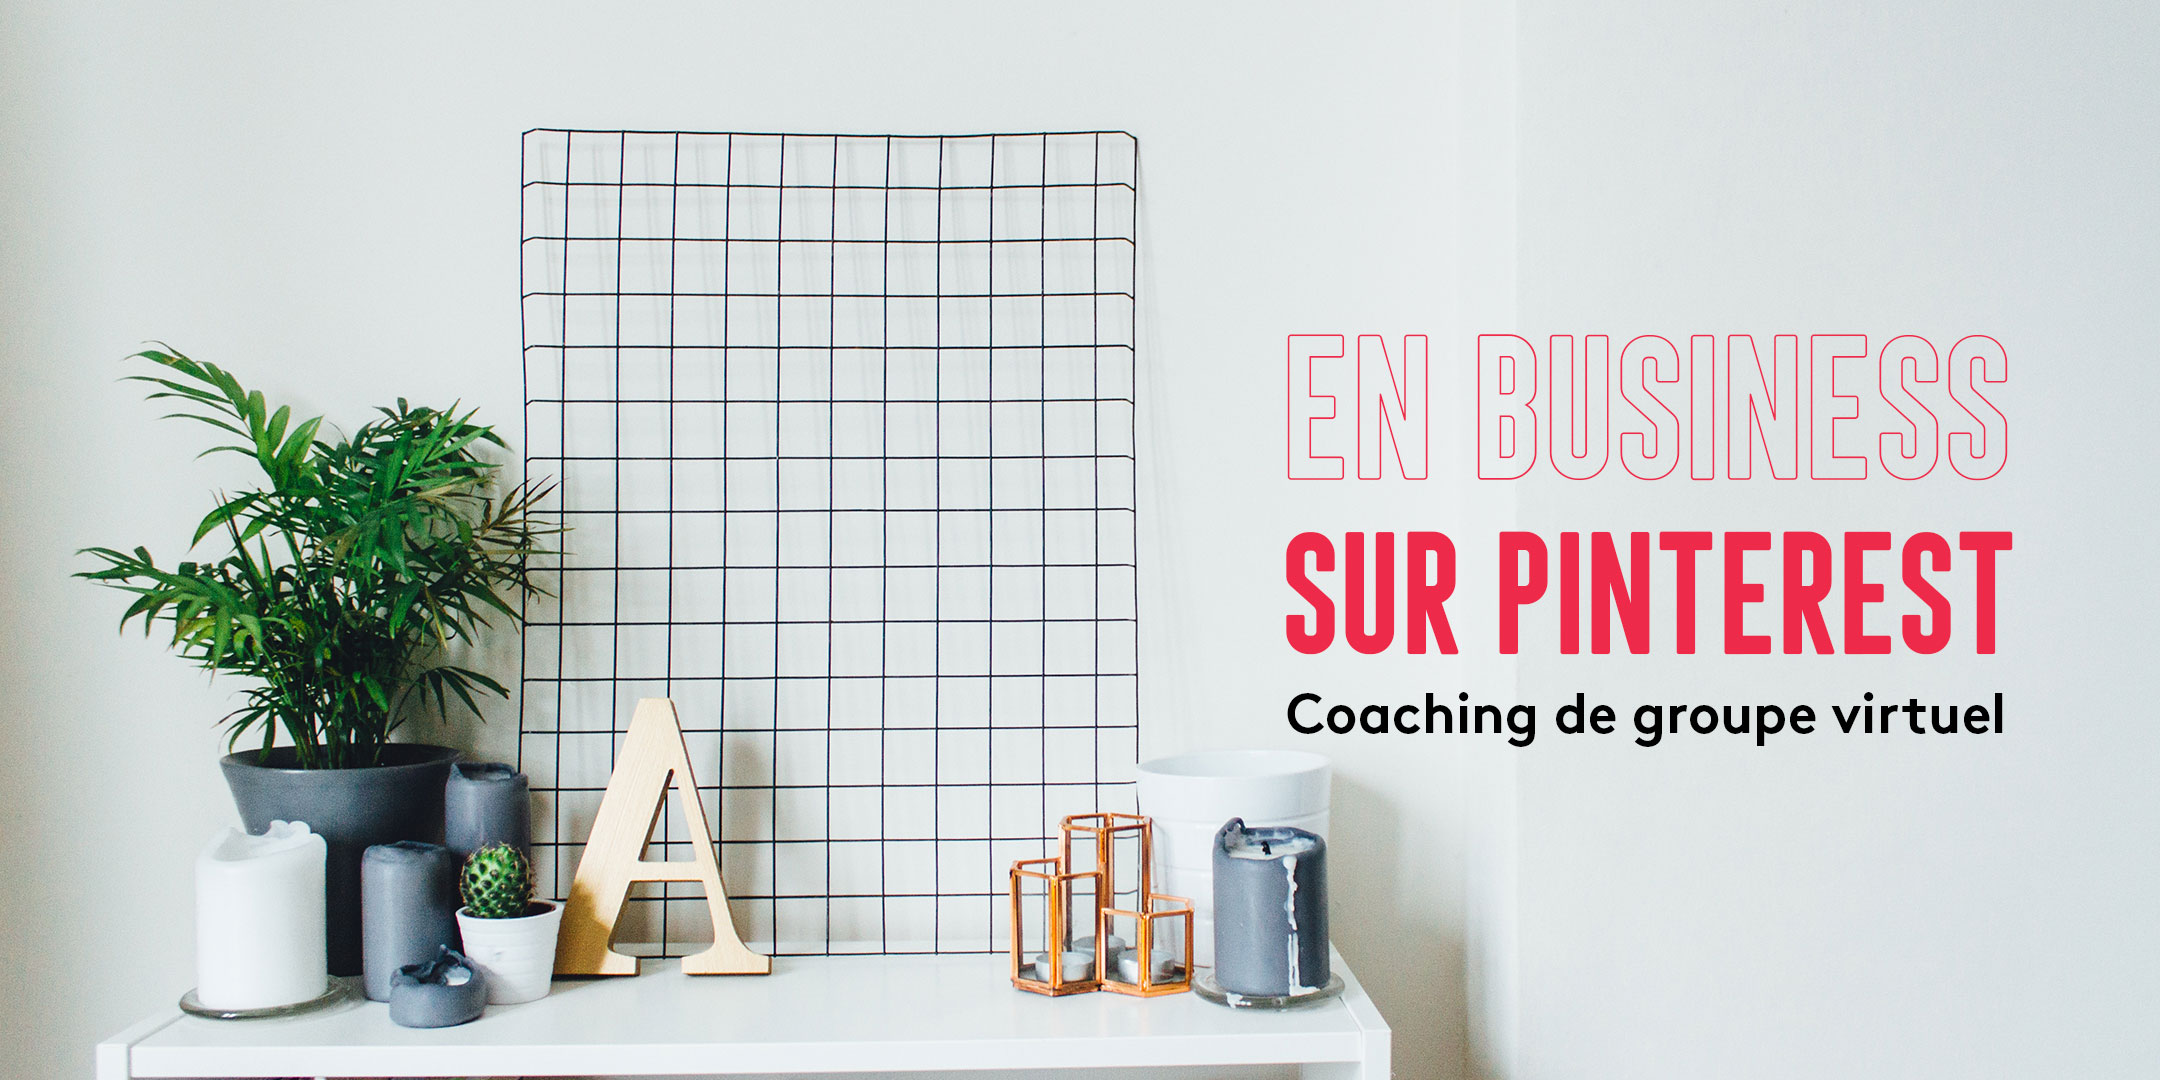 En business sur Pinterest